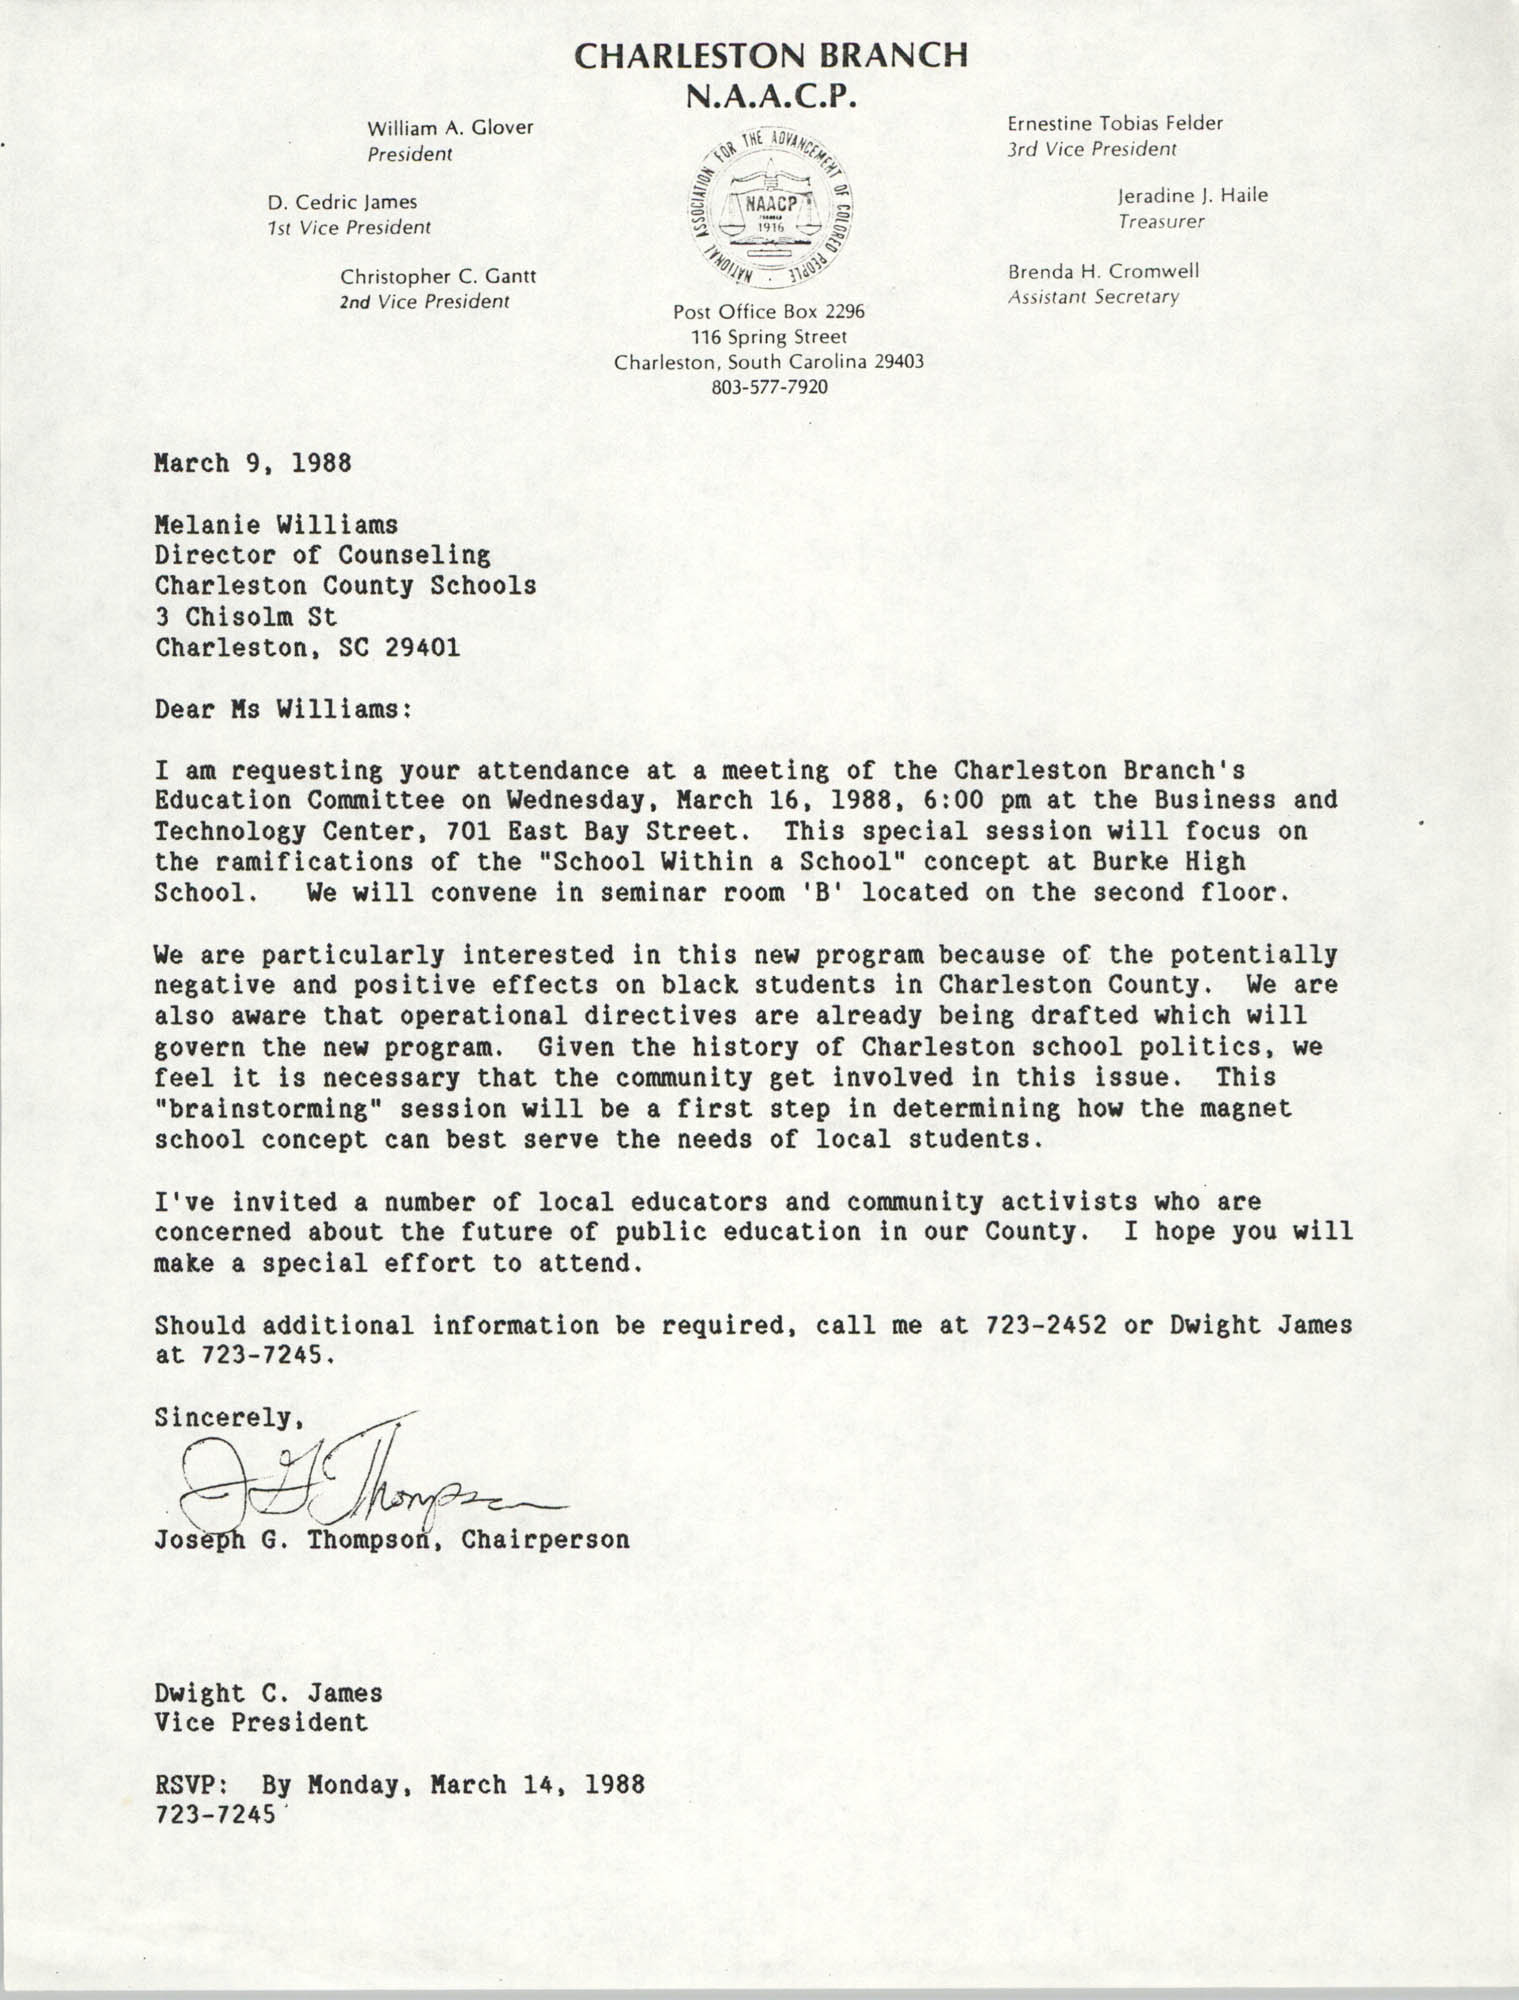 Letter from Joseph G. Thompson to Melanie Williams, March 9, 1988